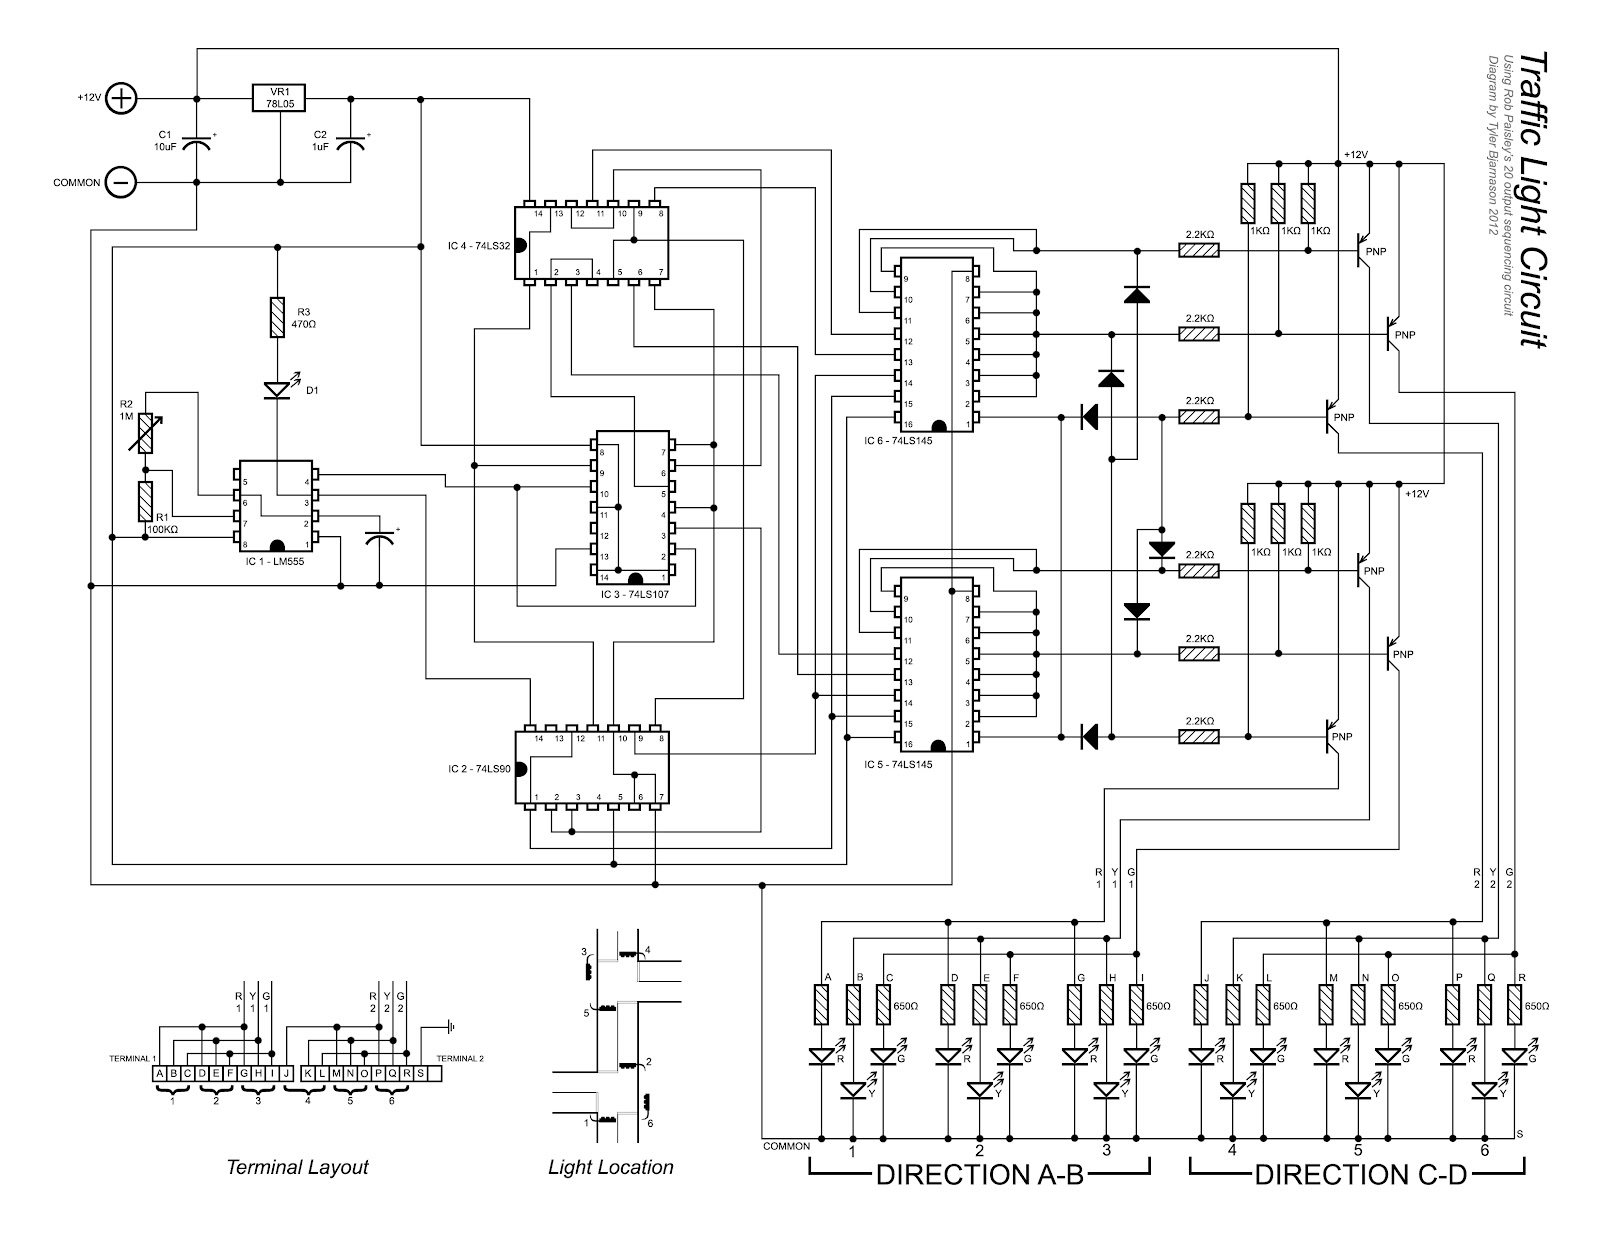 First Stop Light Wiring Diagram Library Two Way Switch Schematic For Traffic Controller Circuit